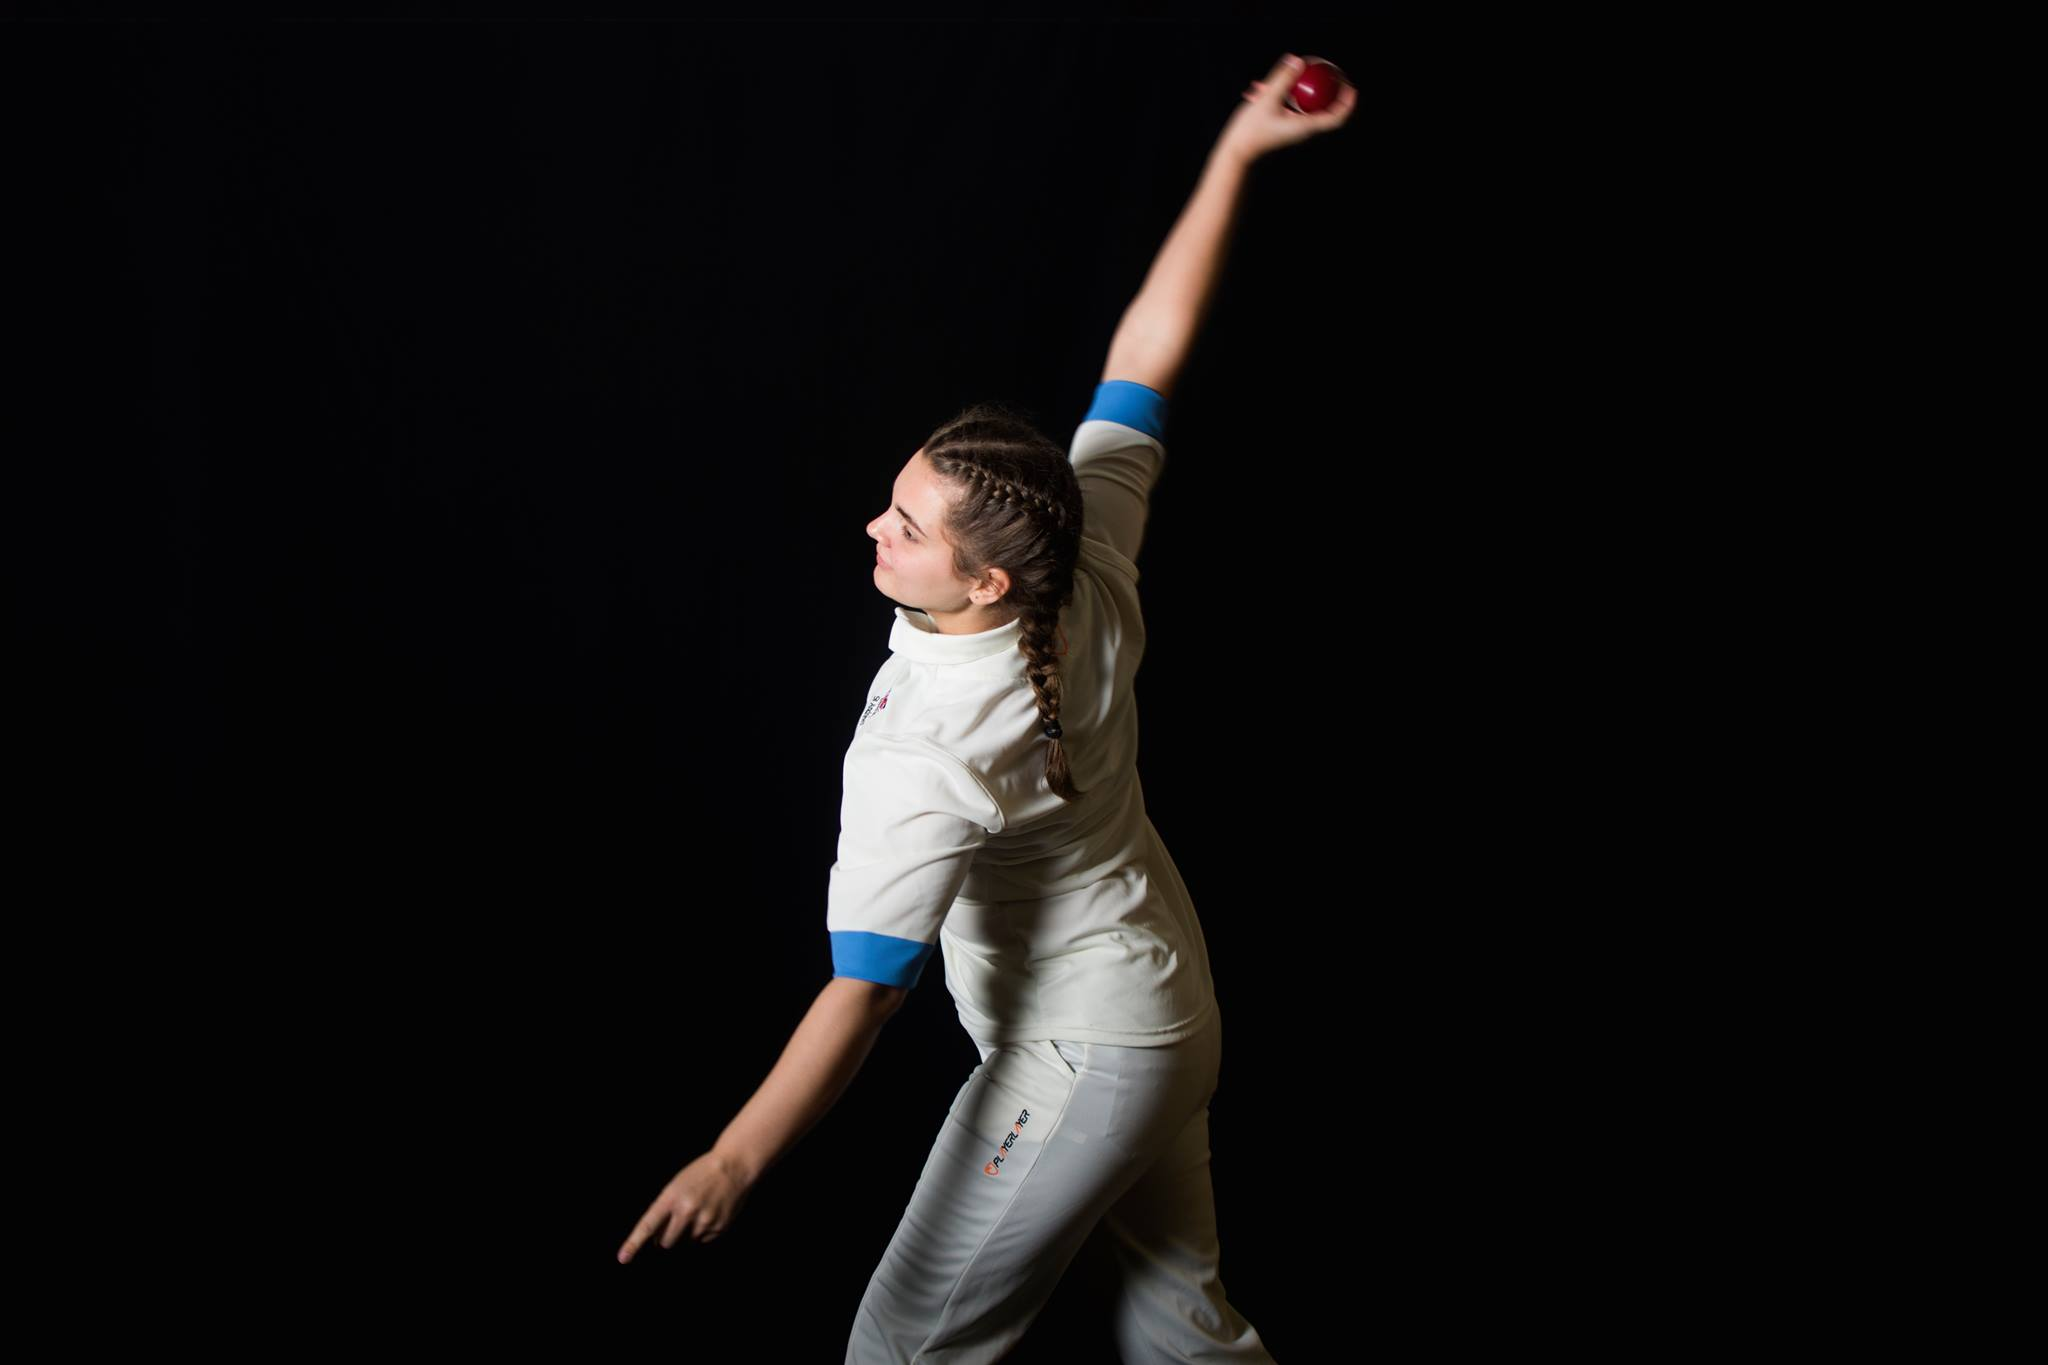 It's Cricket, but Female (and better): Spotlight on our Women's Cricket Team